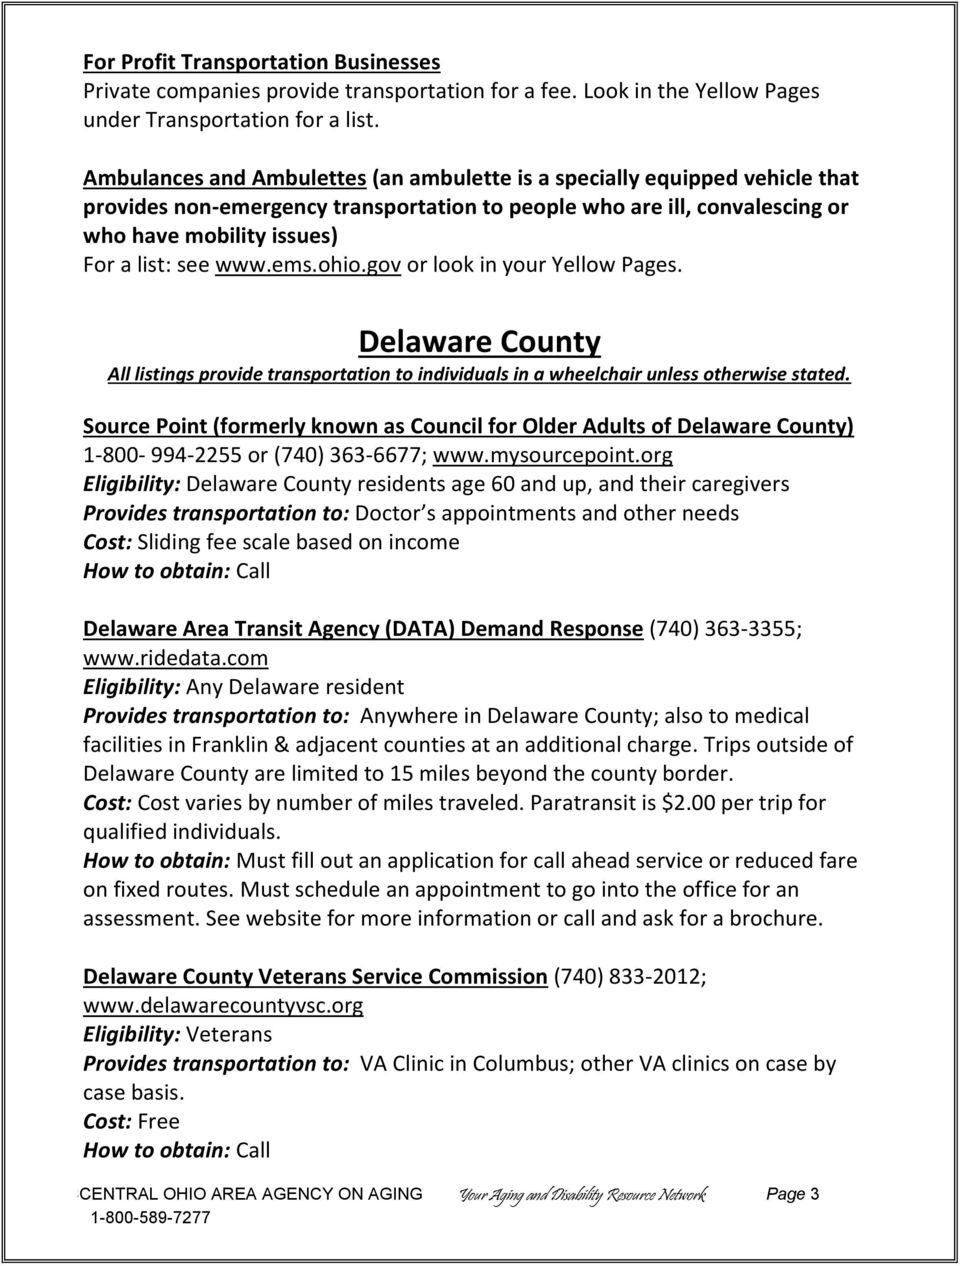 ems.ohio.gov or look in your Yellow Pages. Delaware County All listings provide transportation to individuals in a wheelchair unless otherwise stated.